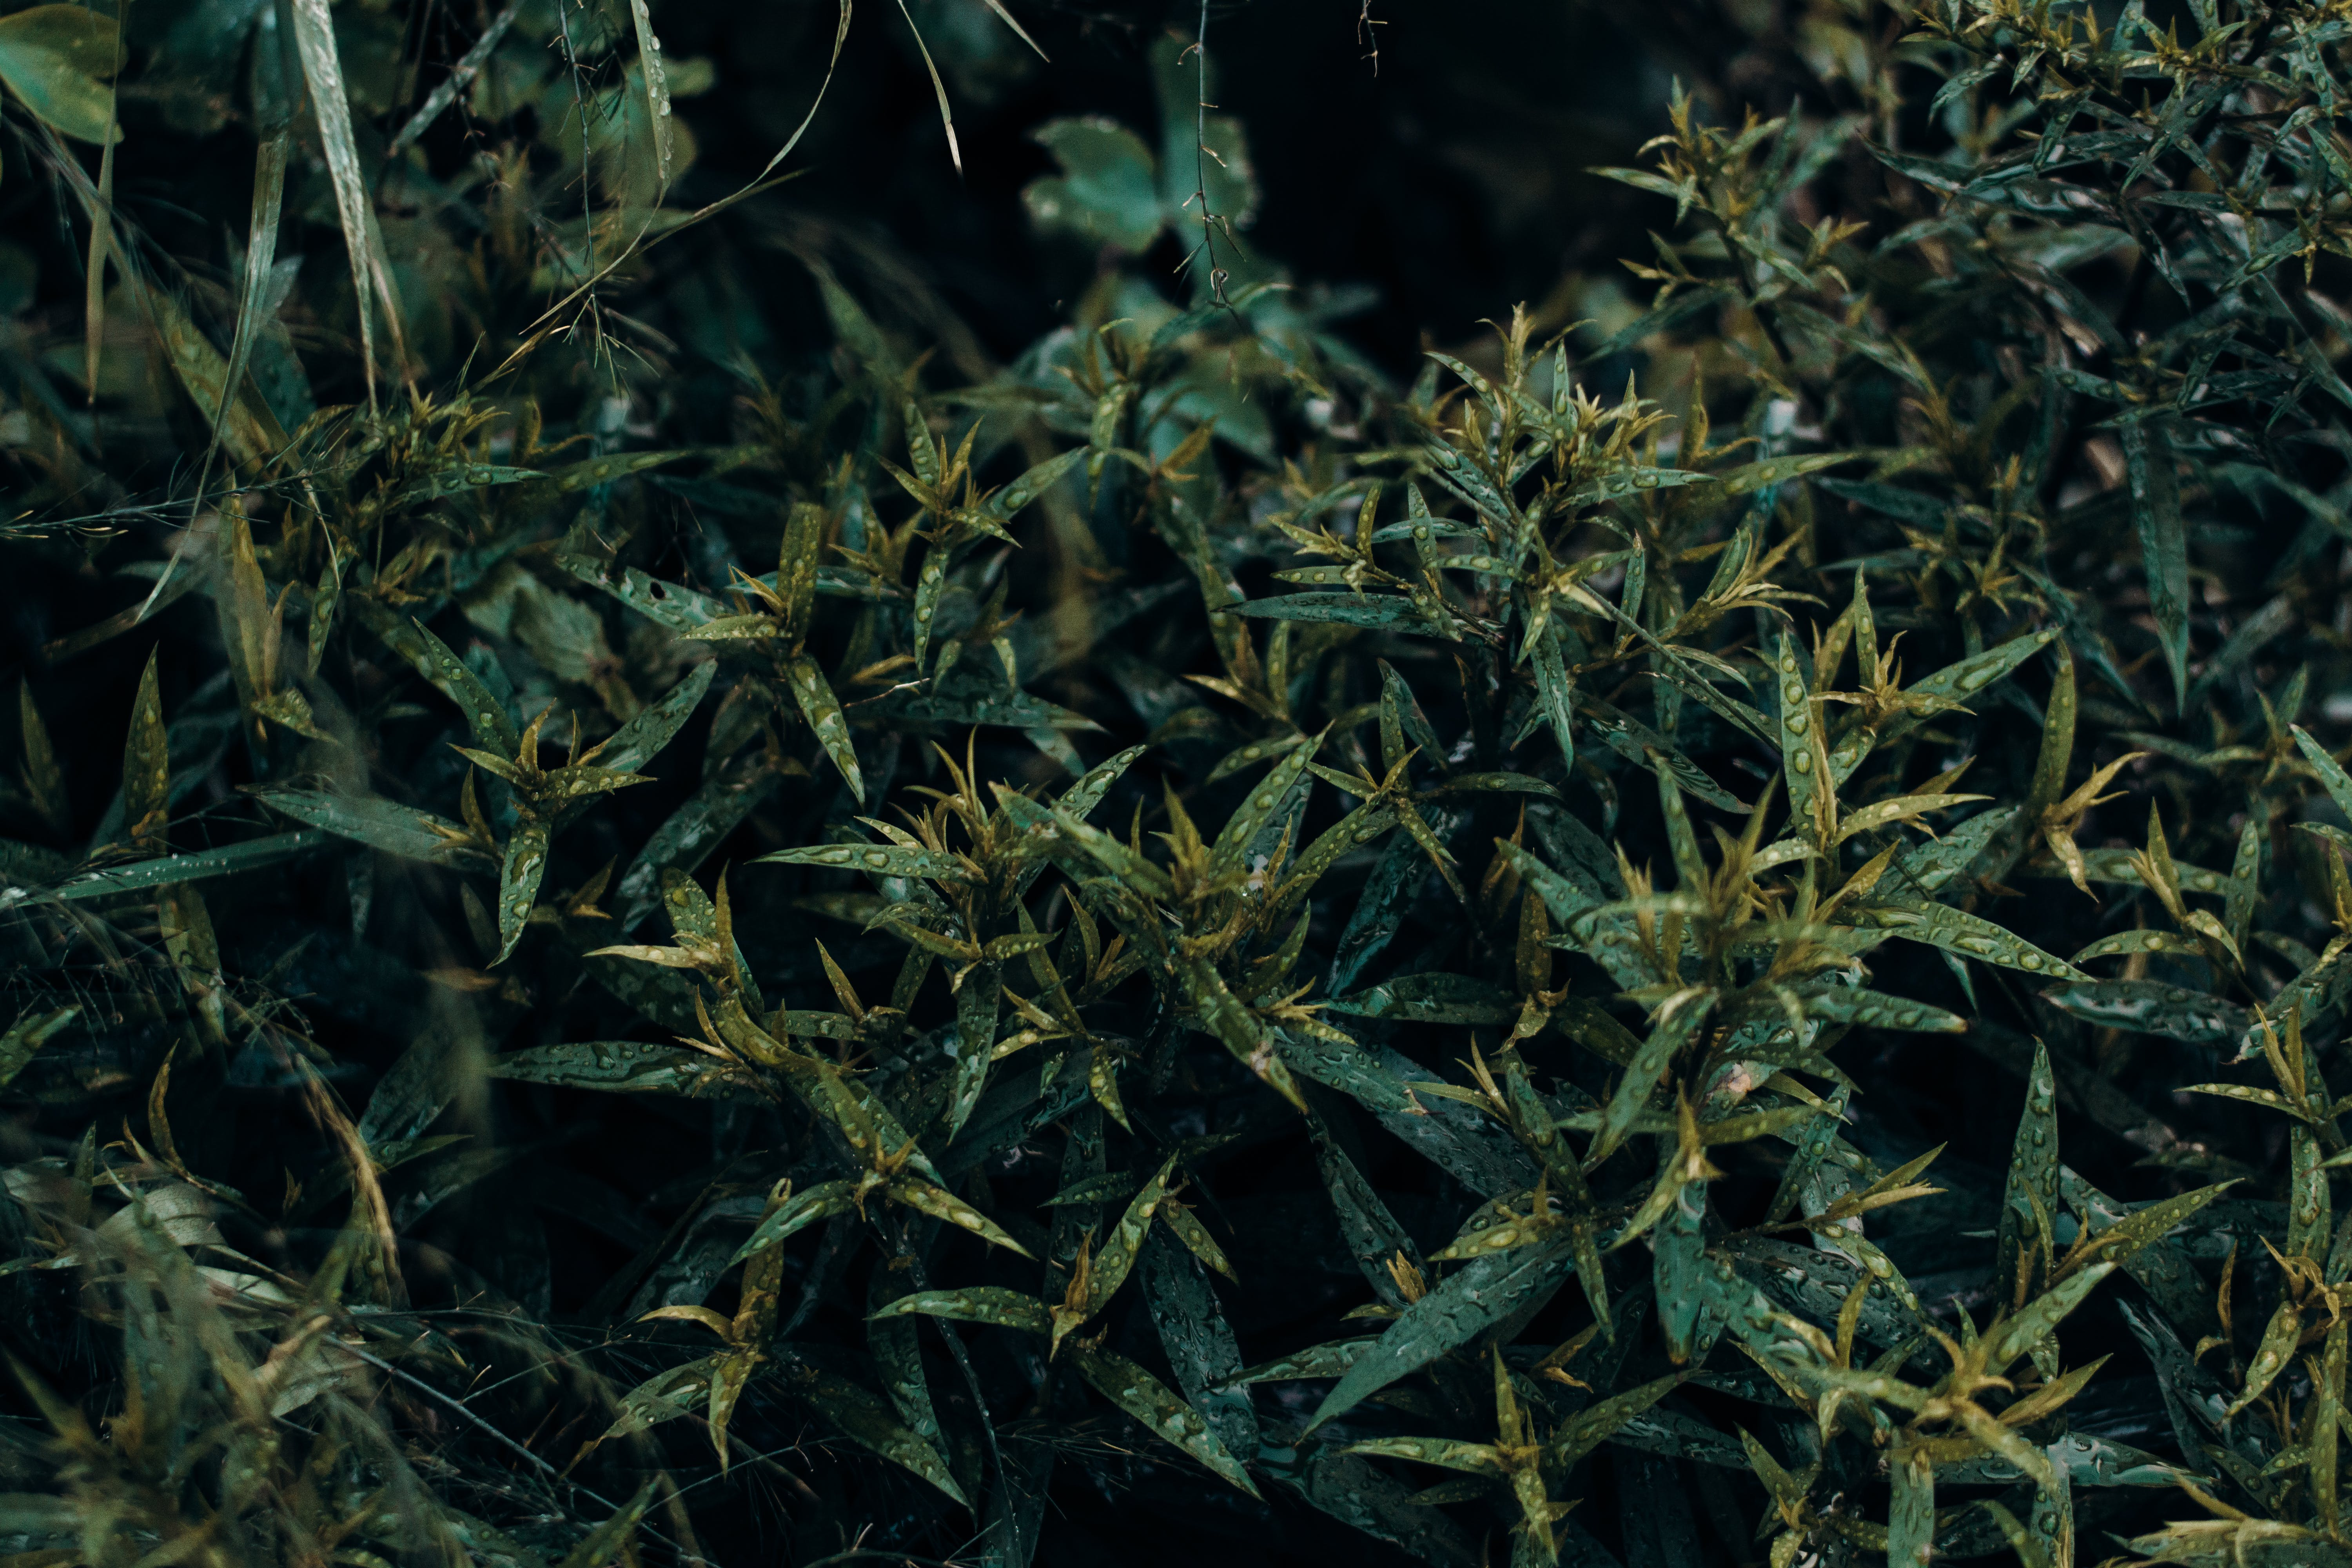 Close-up Photography Green Leafed Plants